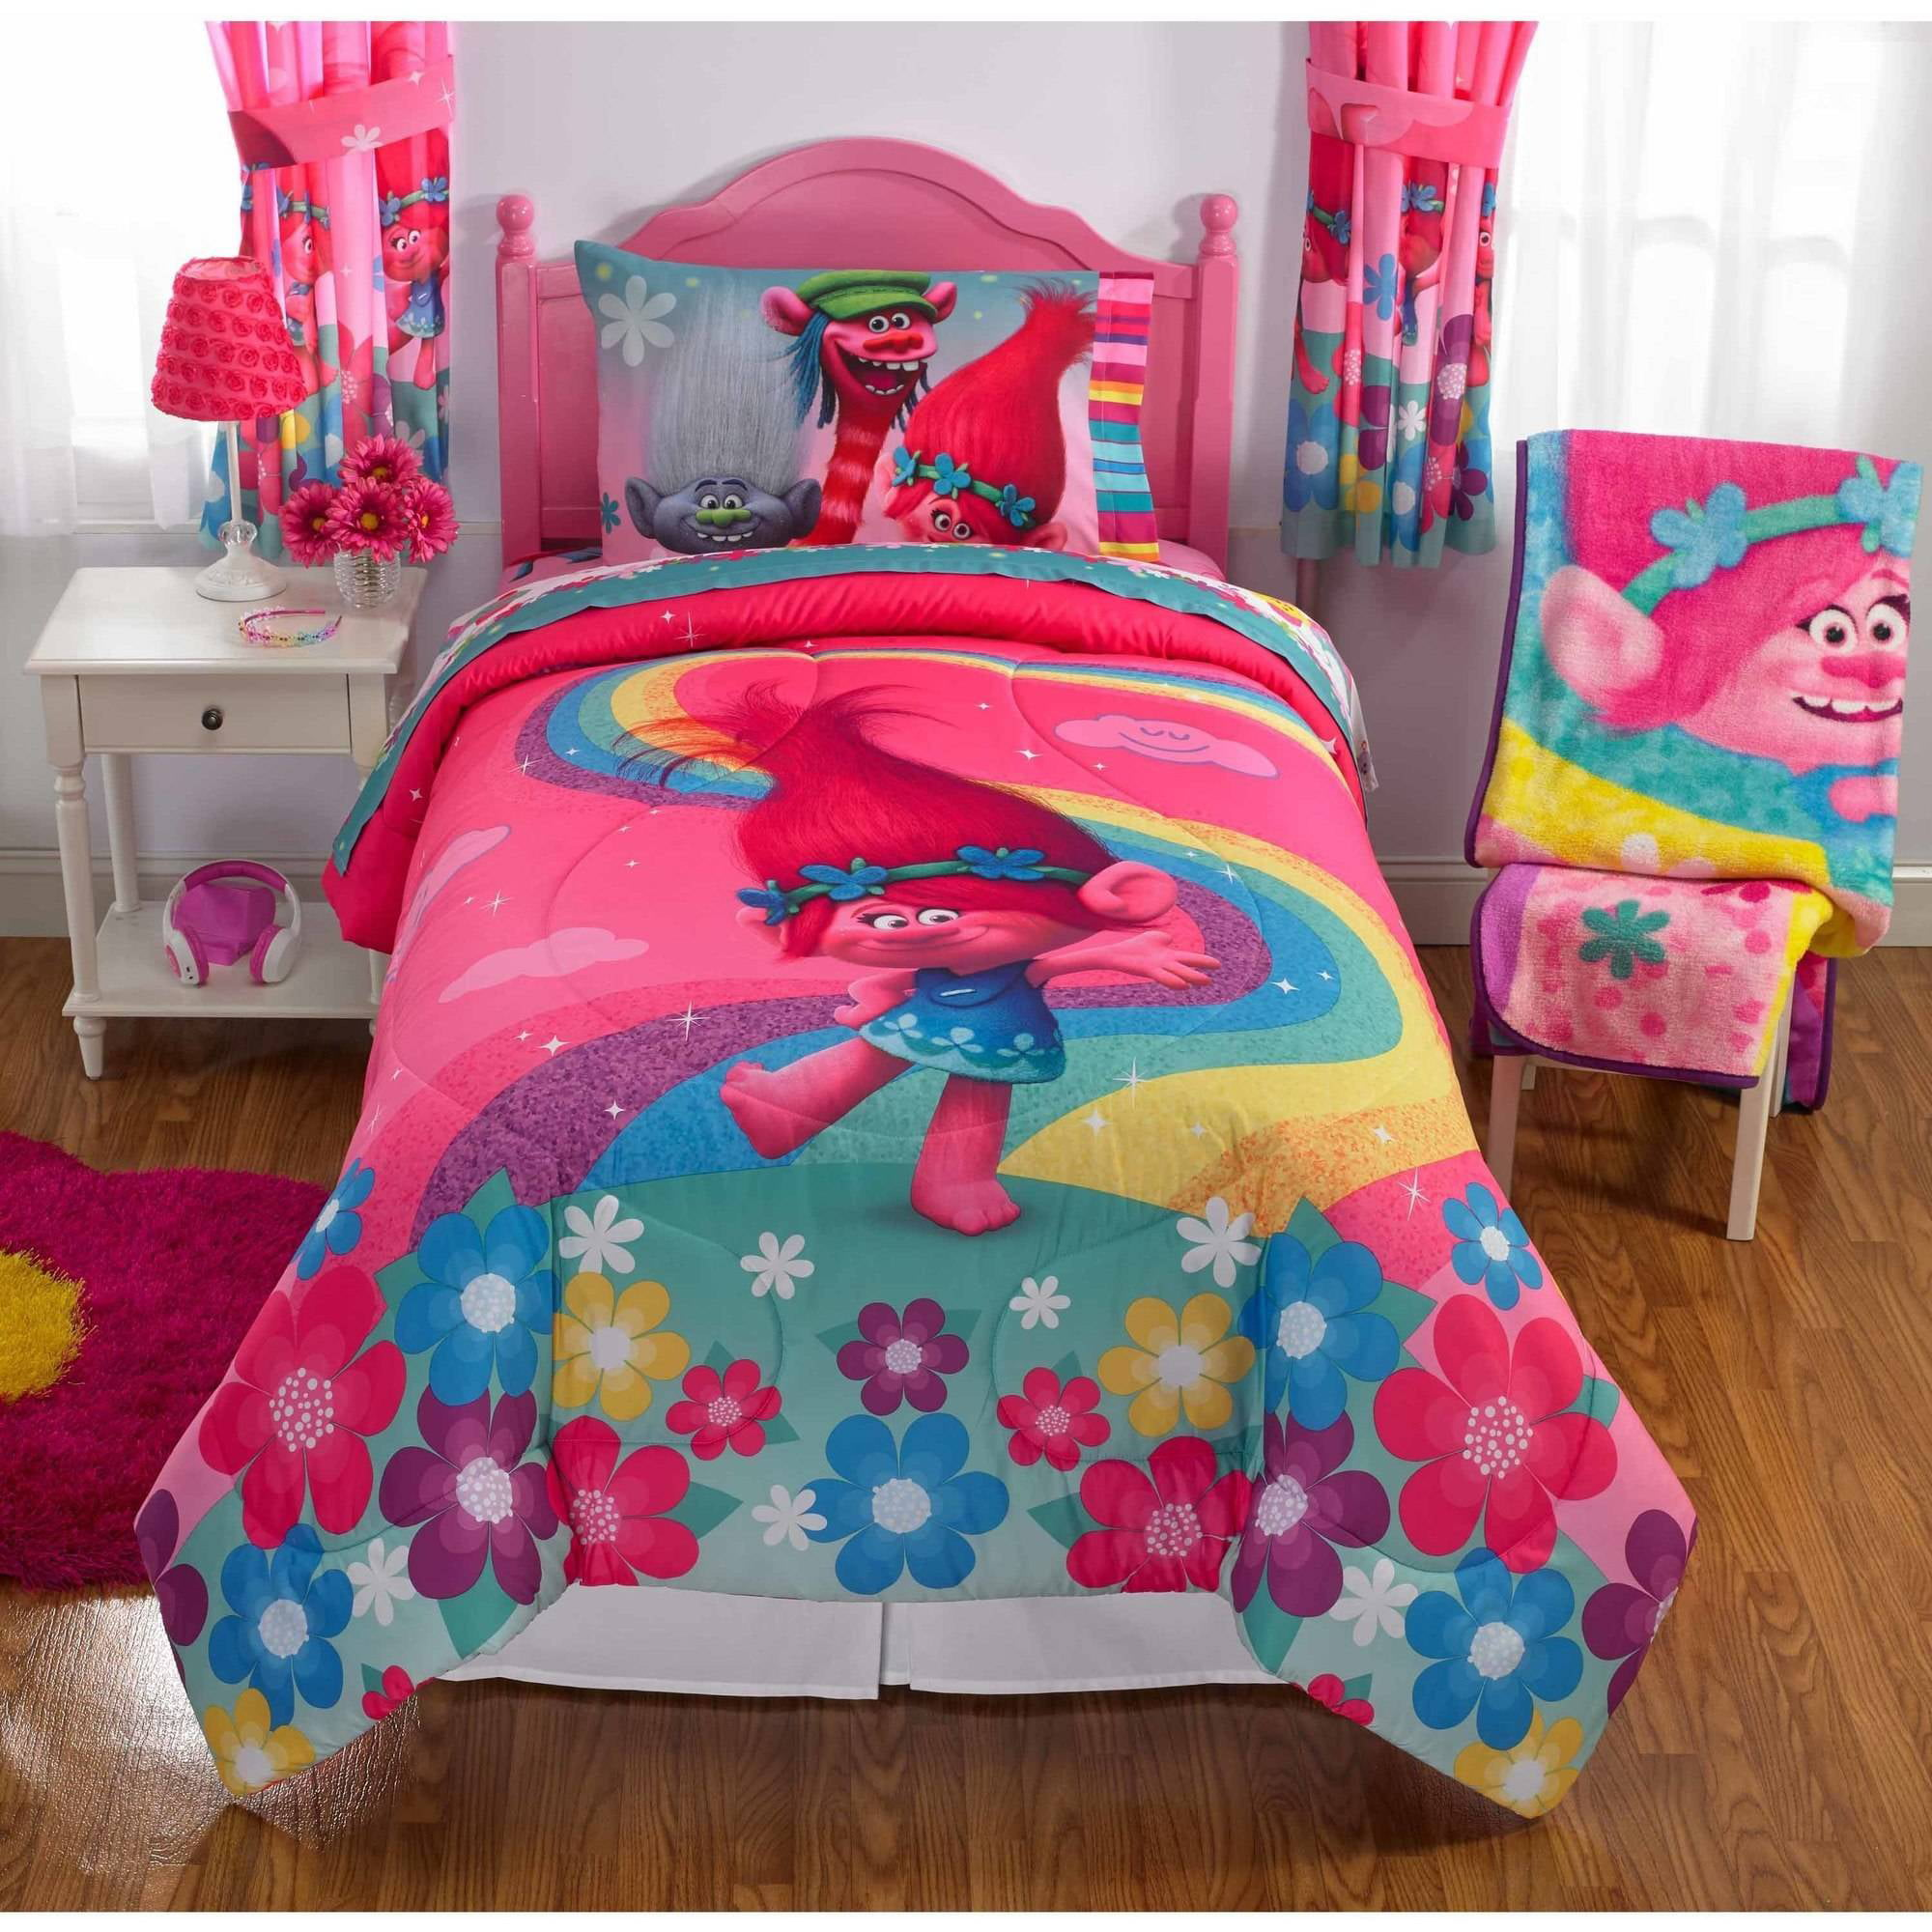 graphic bed a additional twin daisy girls floral images eht bedding comforter p queen bag kids green full in purple